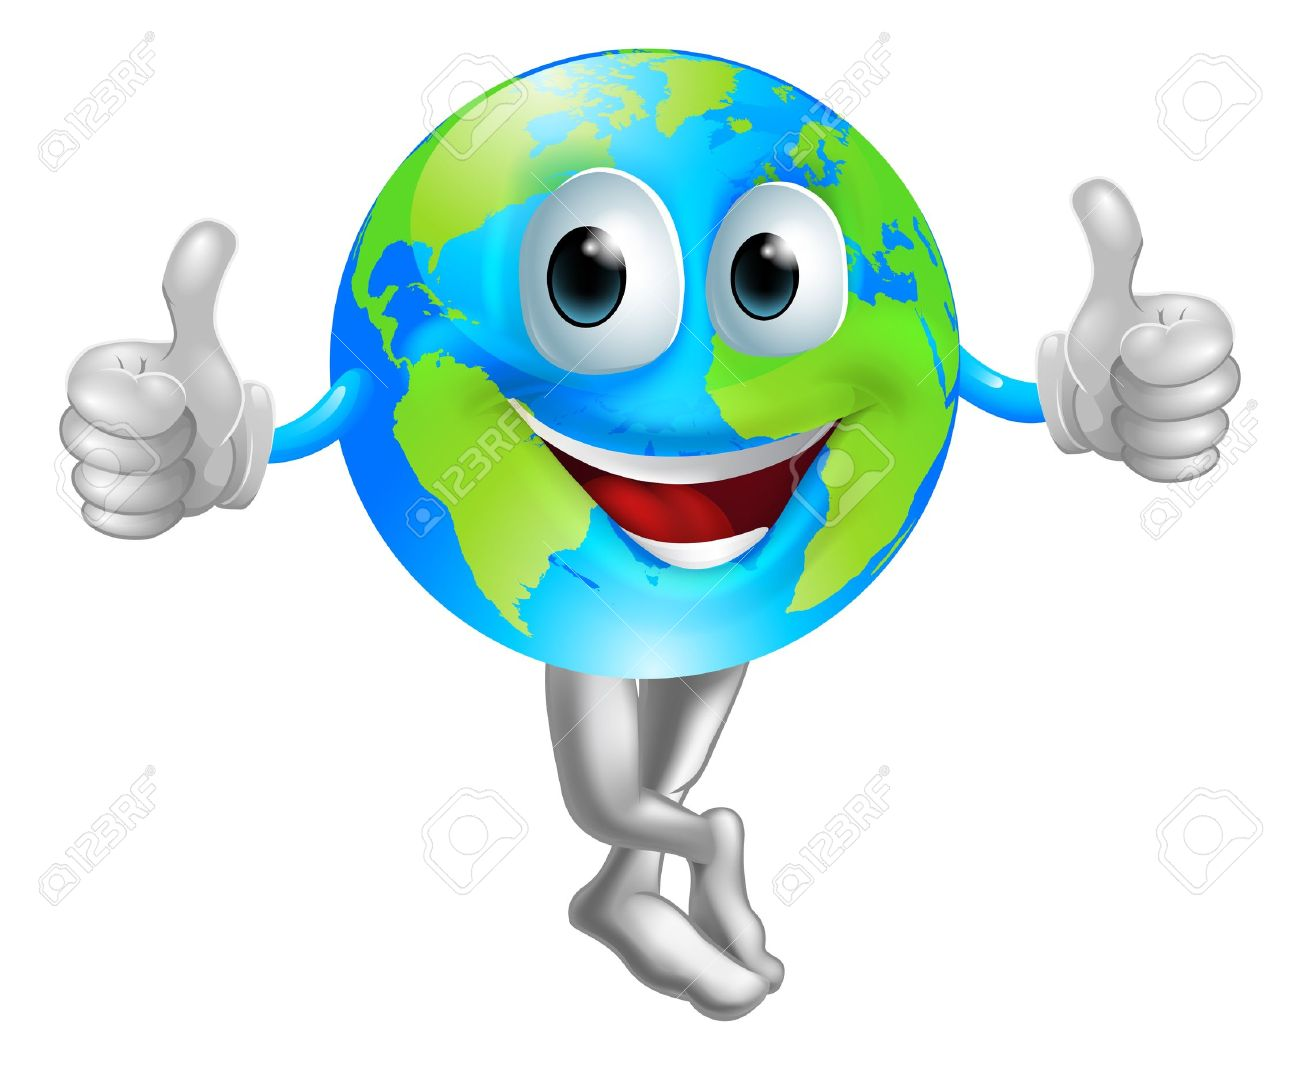 1300x1070 A Cartoon Globe Mascot Man With A Happy Face Doing A Thumbs Up